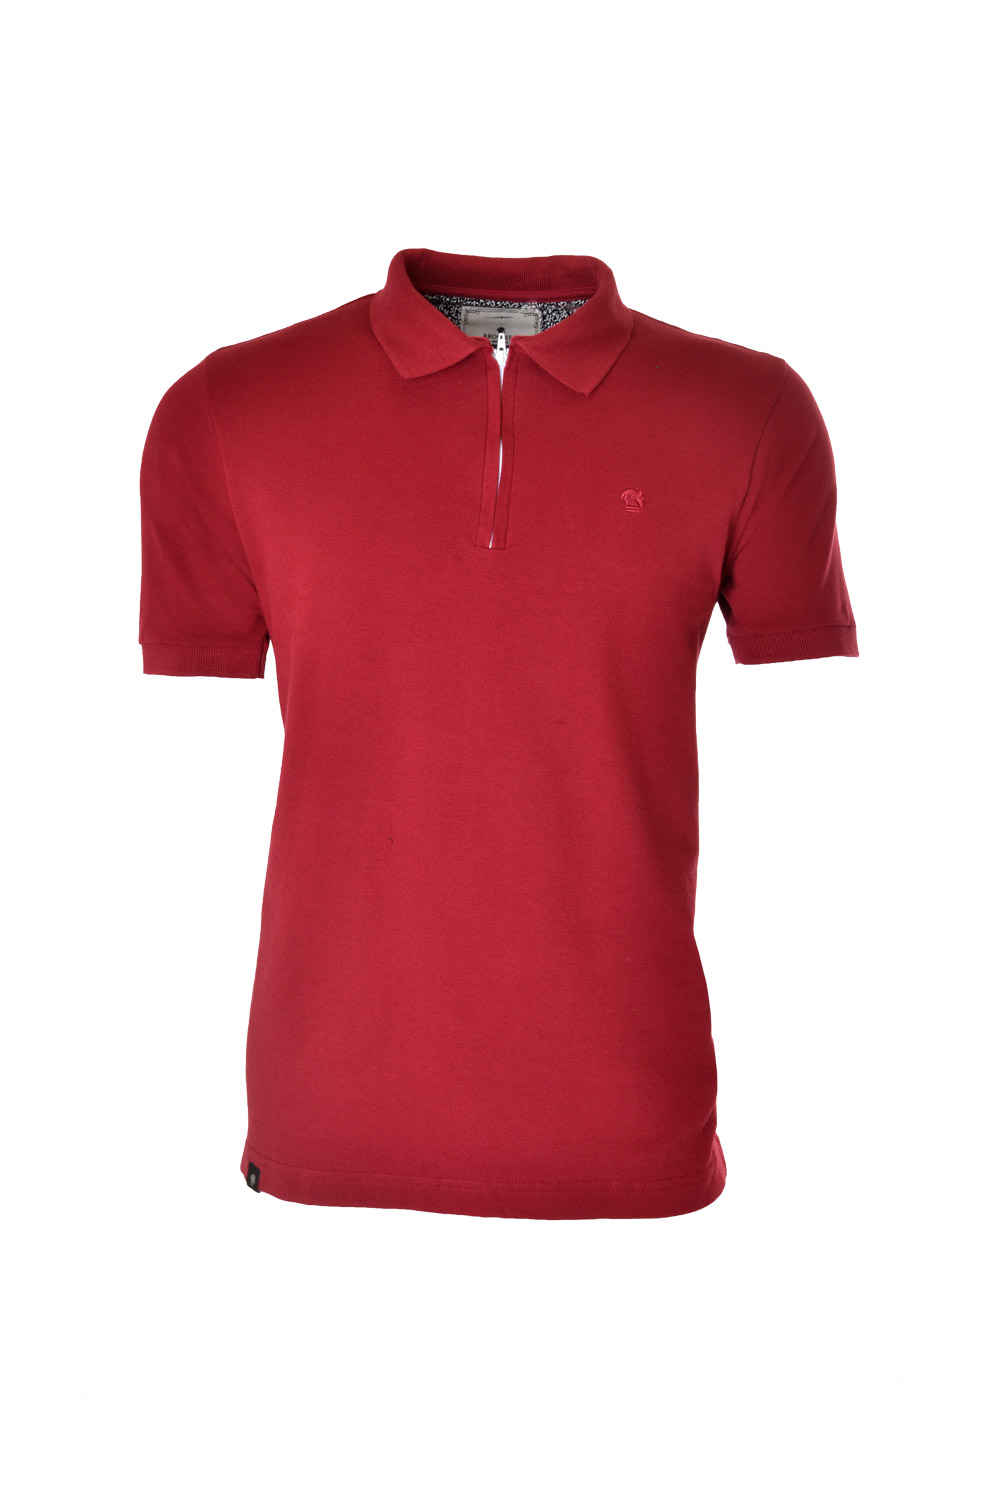 POLO MC CASUAL SUPER SLIM ALGODAO & ELASTANO PIQUET LISO BORDO